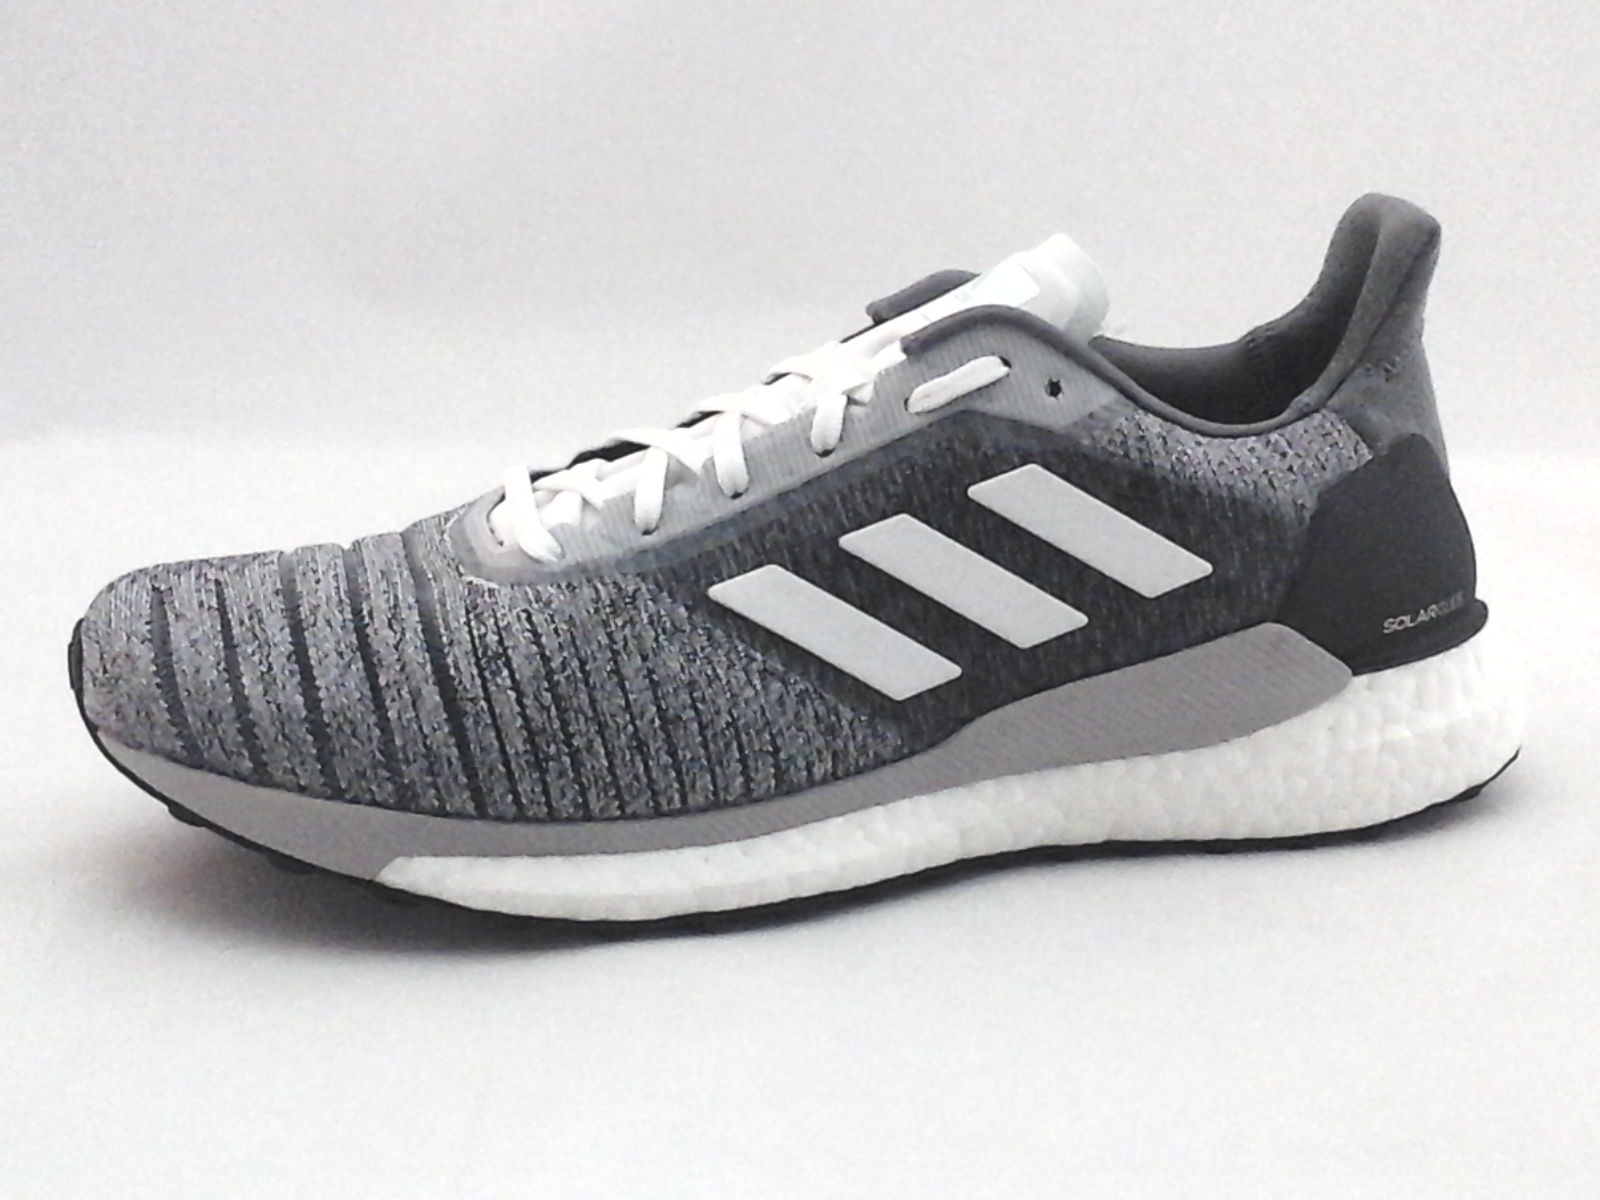 official photos 37ed2 3ceab Adidas Solar Glide Boost F34988 Gray Running Shoes Womens US 9  41 13  140 New